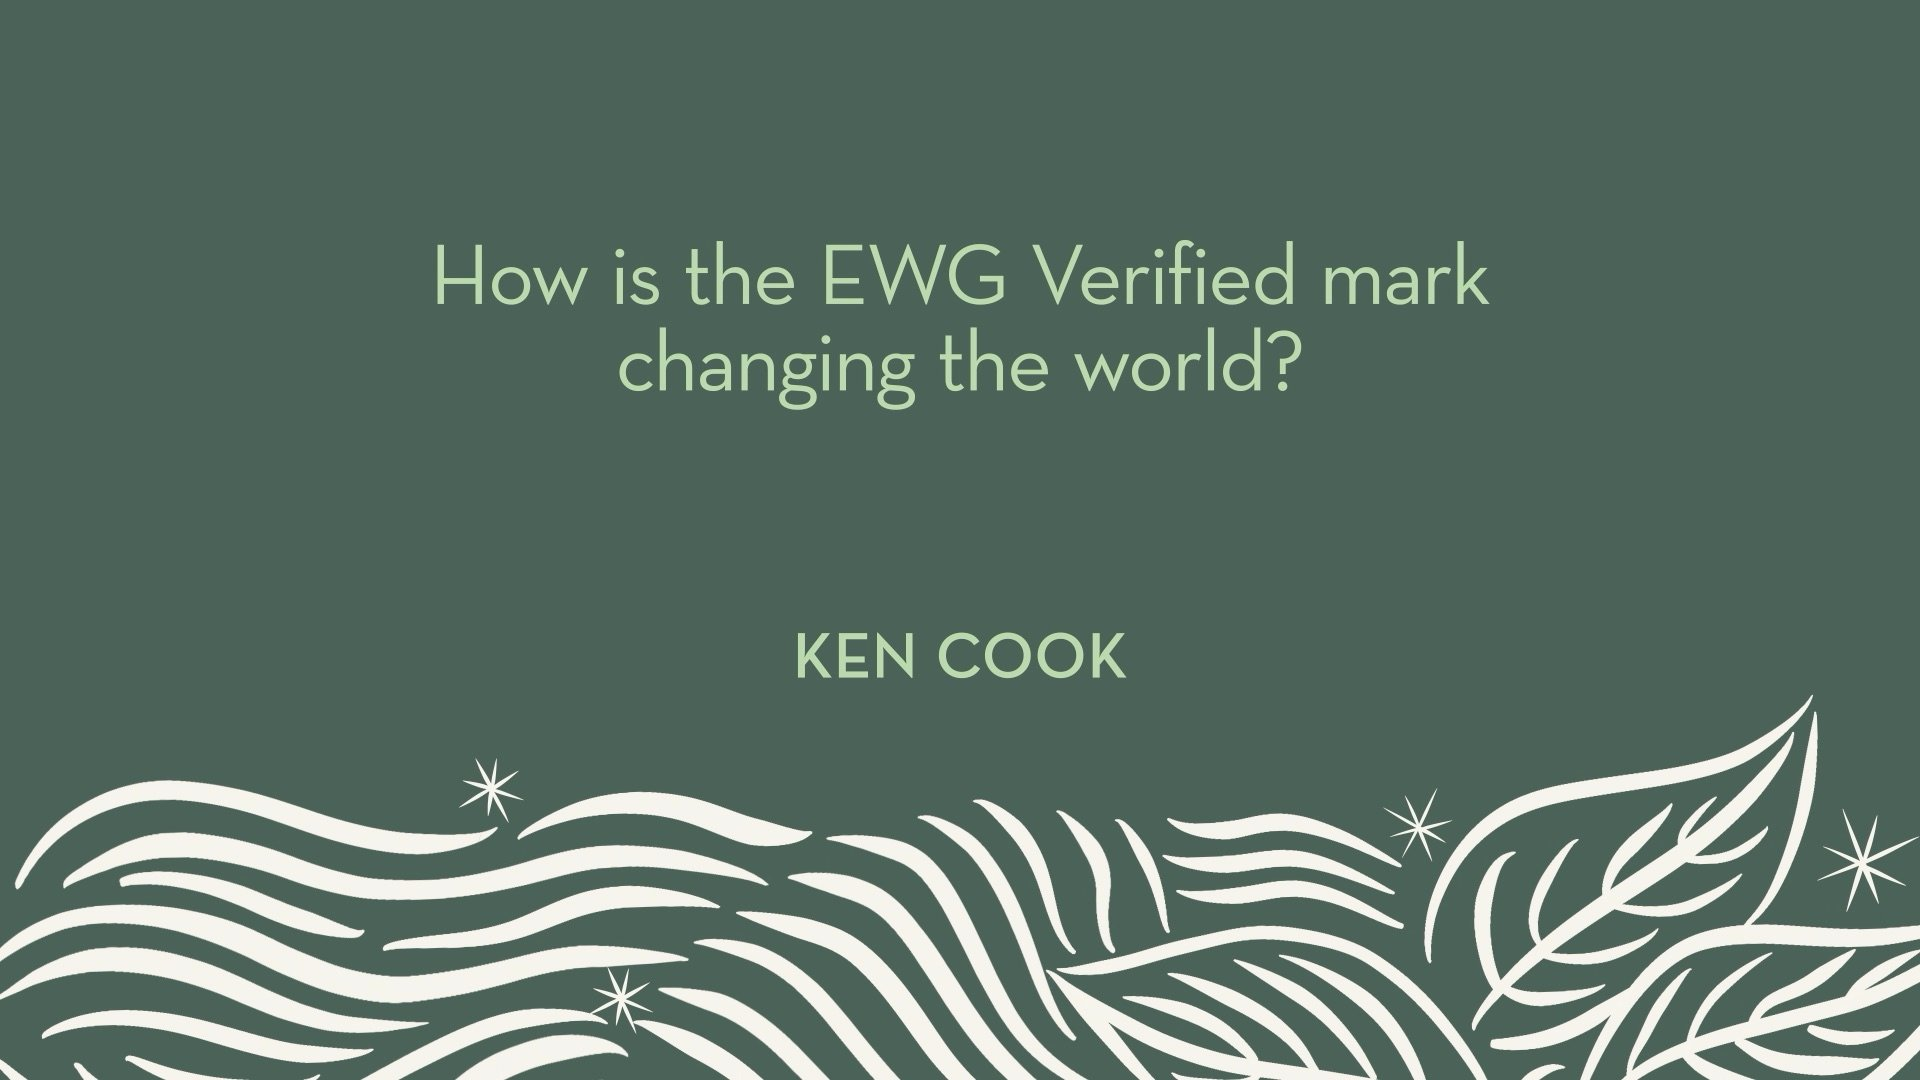 Ken Cook | How is the EWG Verified mark changing the world?